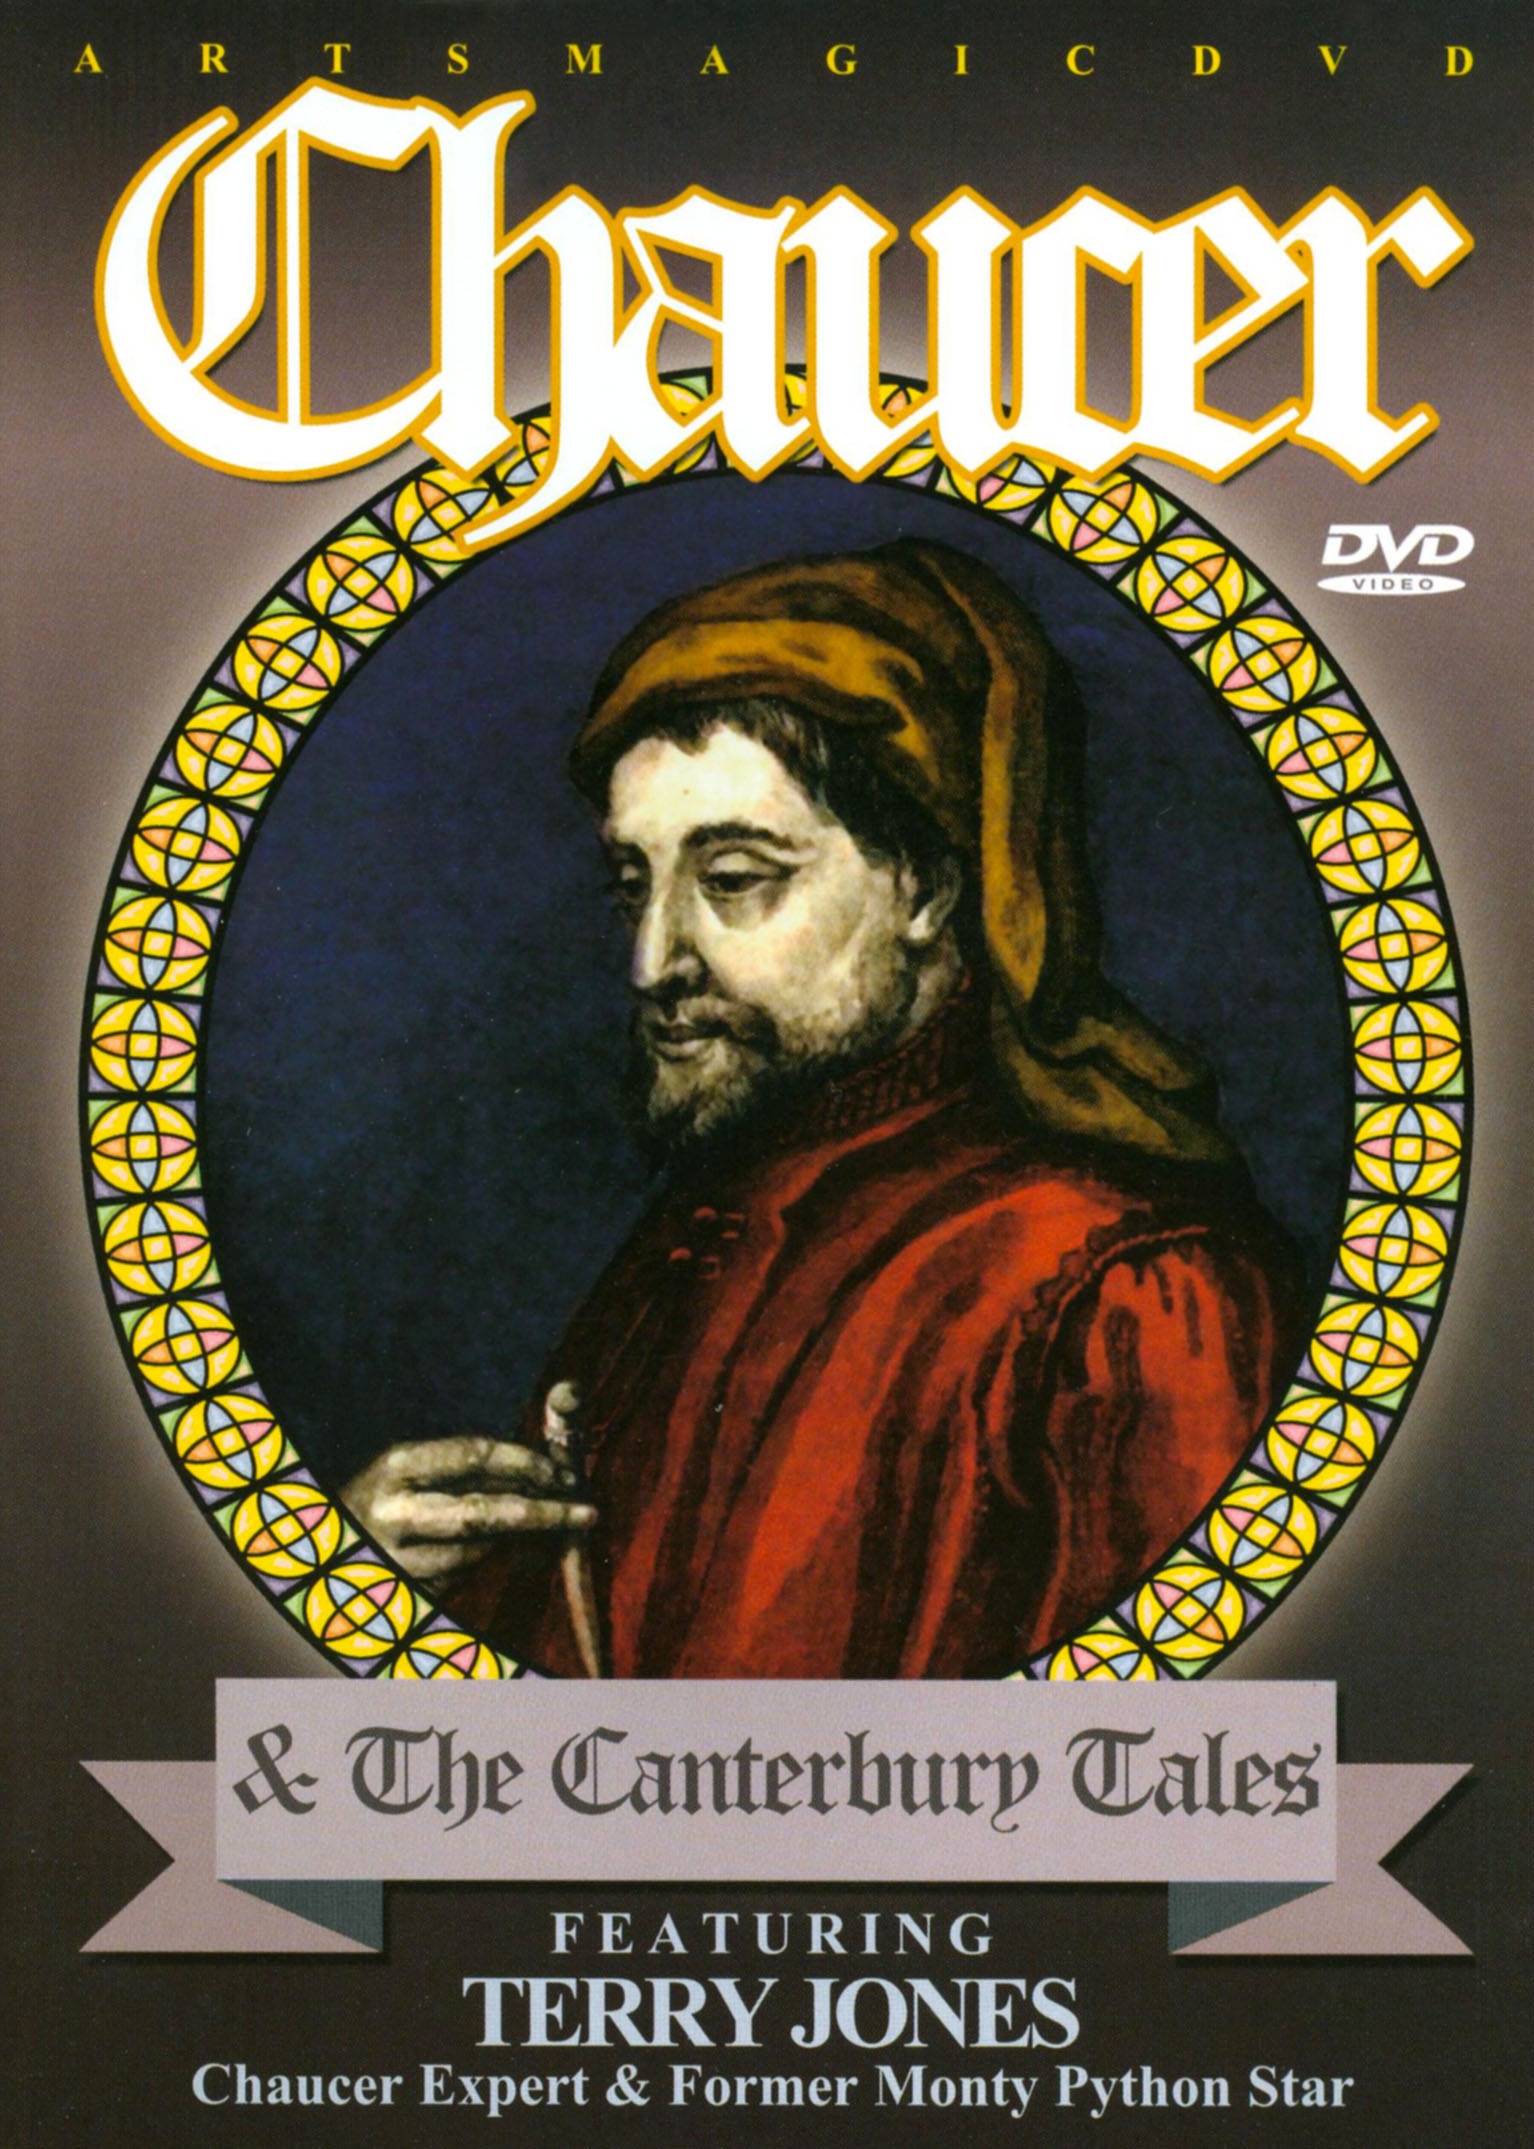 canterbury tales themes essay Themes in the canterbury tales 1 essay [writer name] [supervisor name] [subject] [date] themes in the canterbury tales canterbury tales by chaucer the canterbury tales is a work written by geoffrey chaucer in the late fourteenth century about a group of pilgrims, of many different occupations.